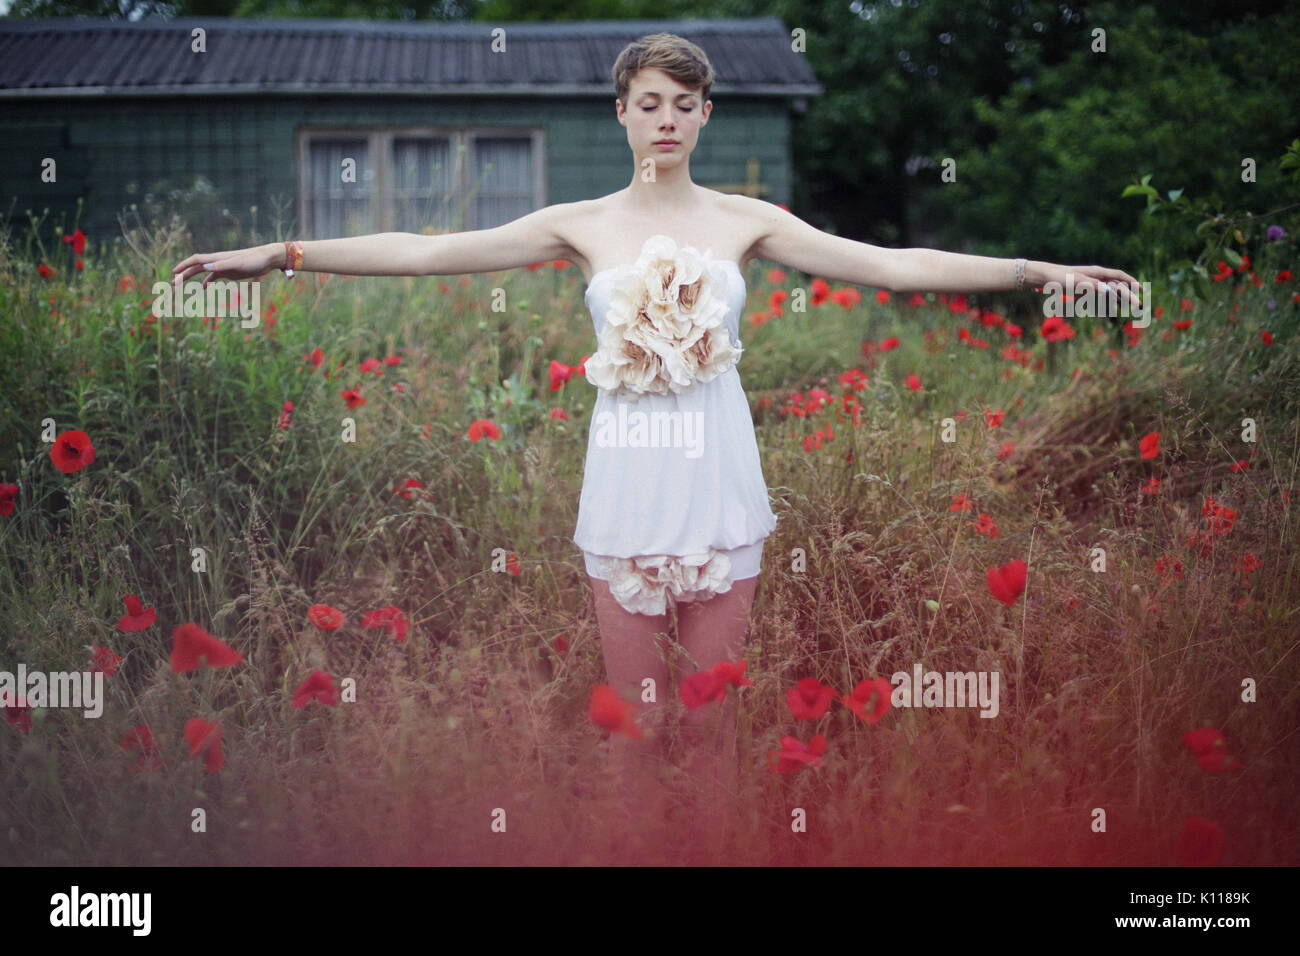 Young woman dancing in a garden - Stock Image